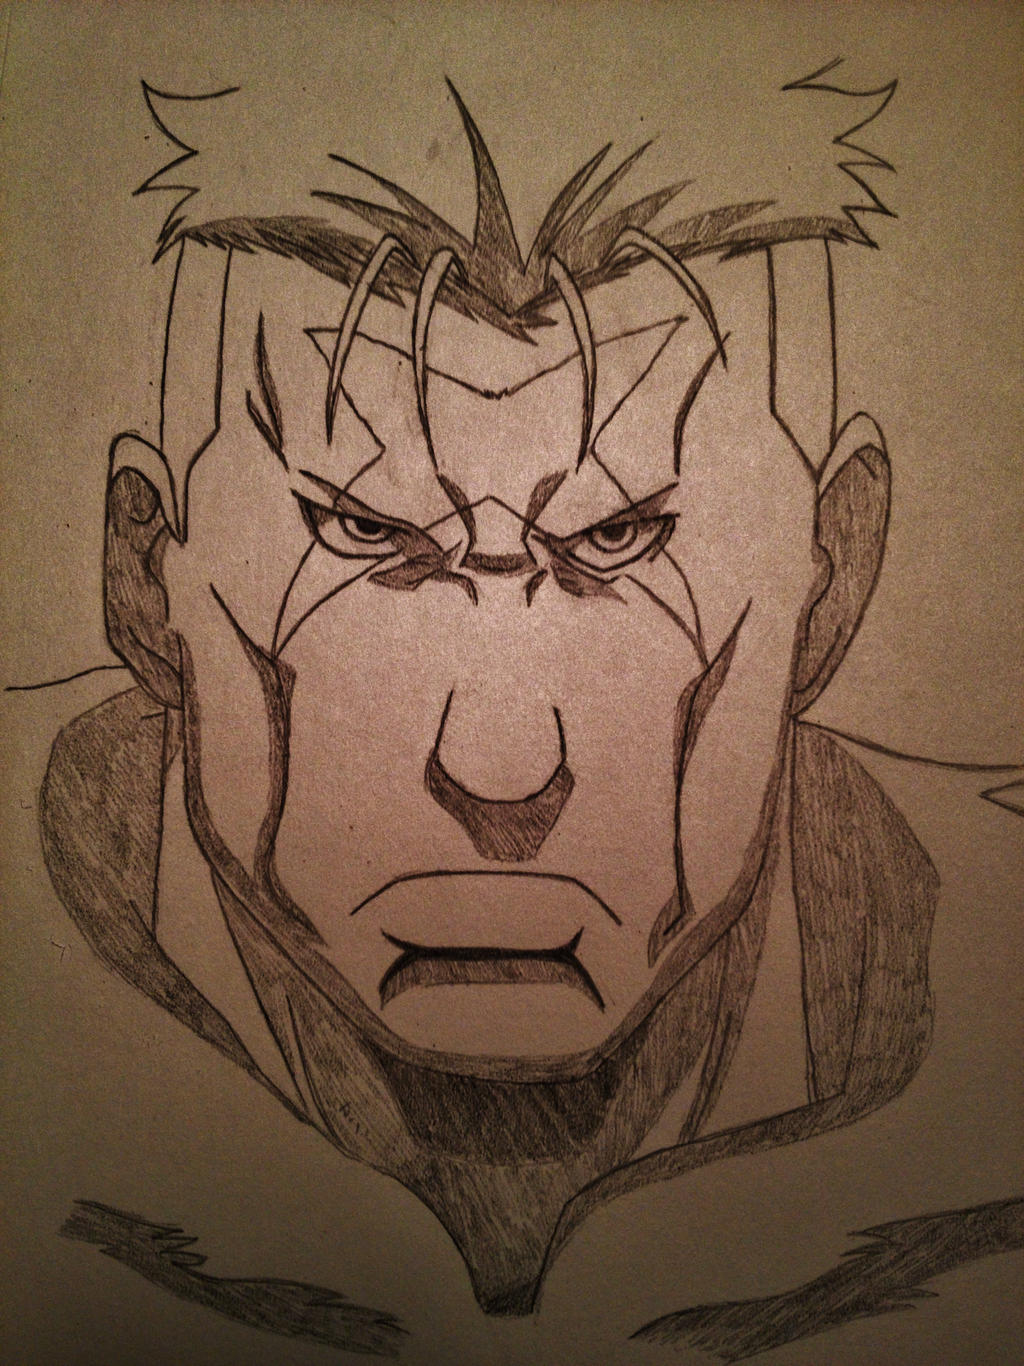 Scar Fma by TheLegacyOfJP